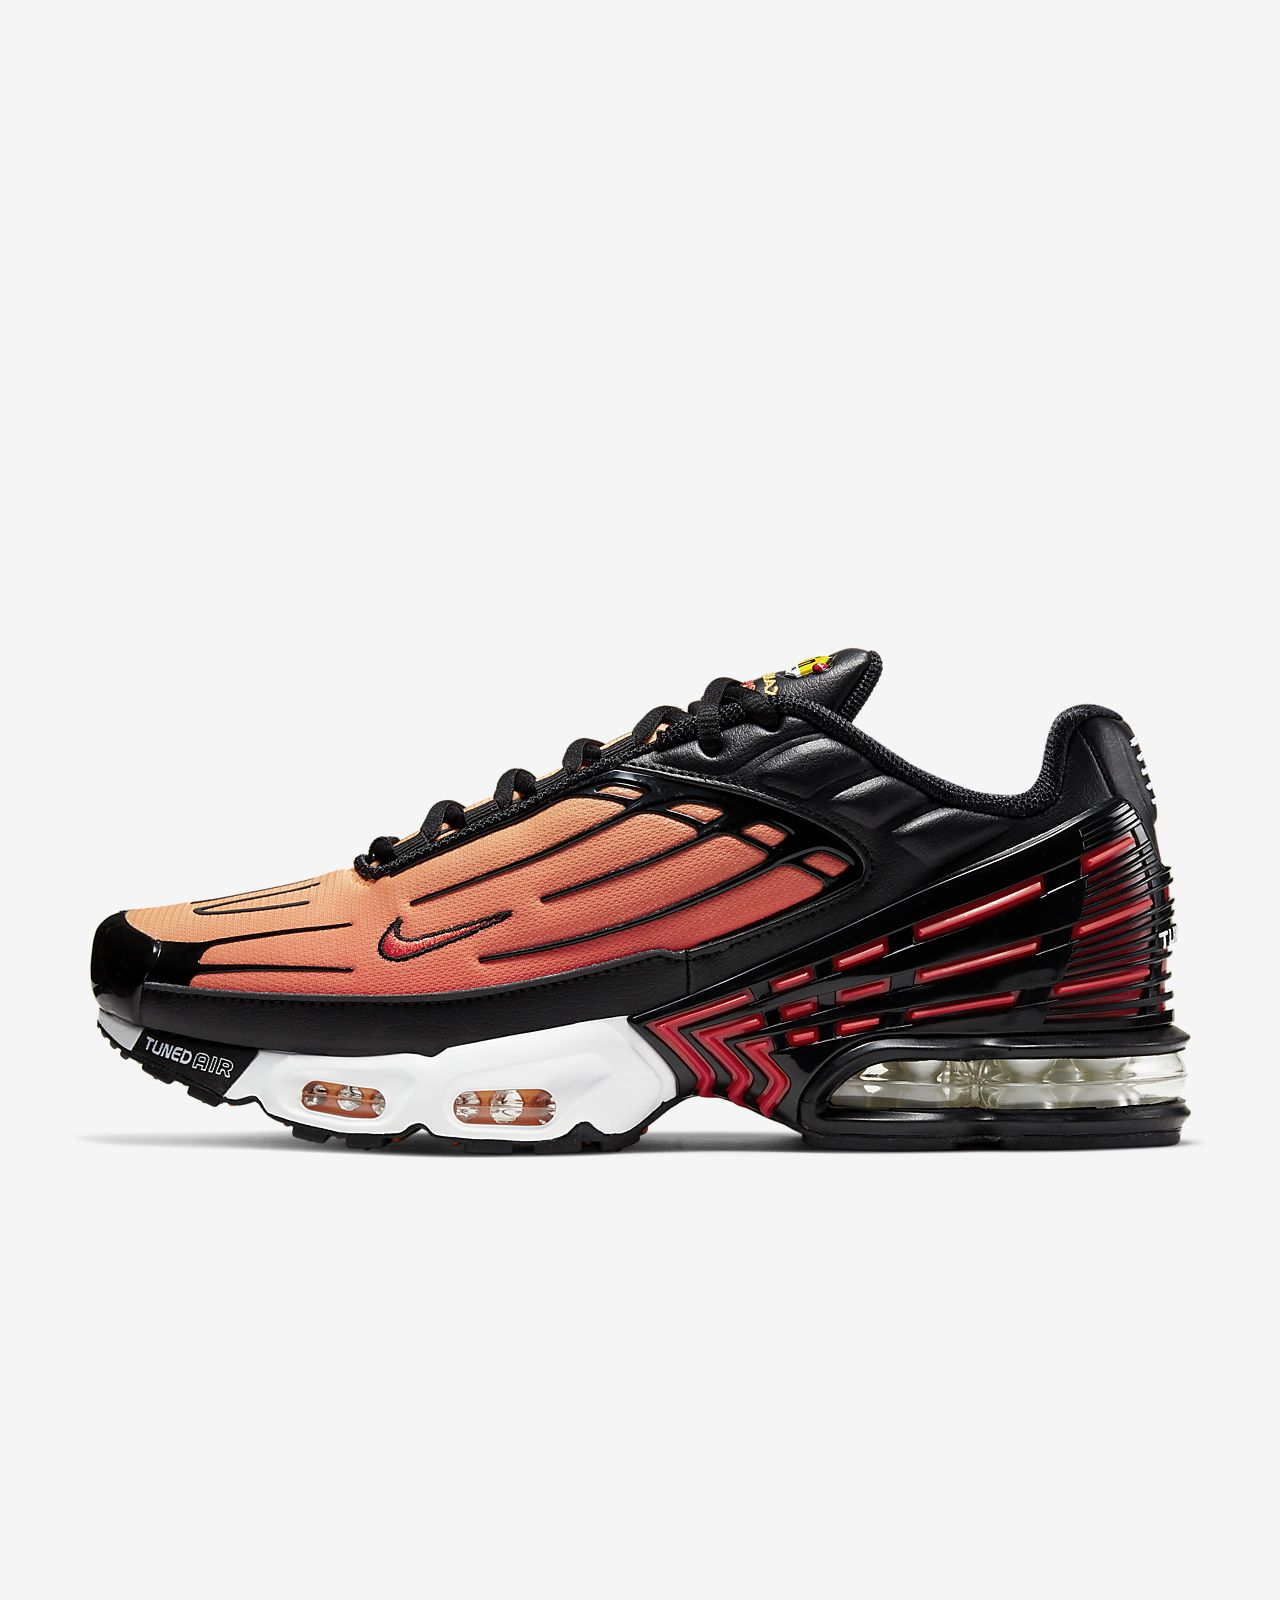 Nike Air Max Plus III férficipő